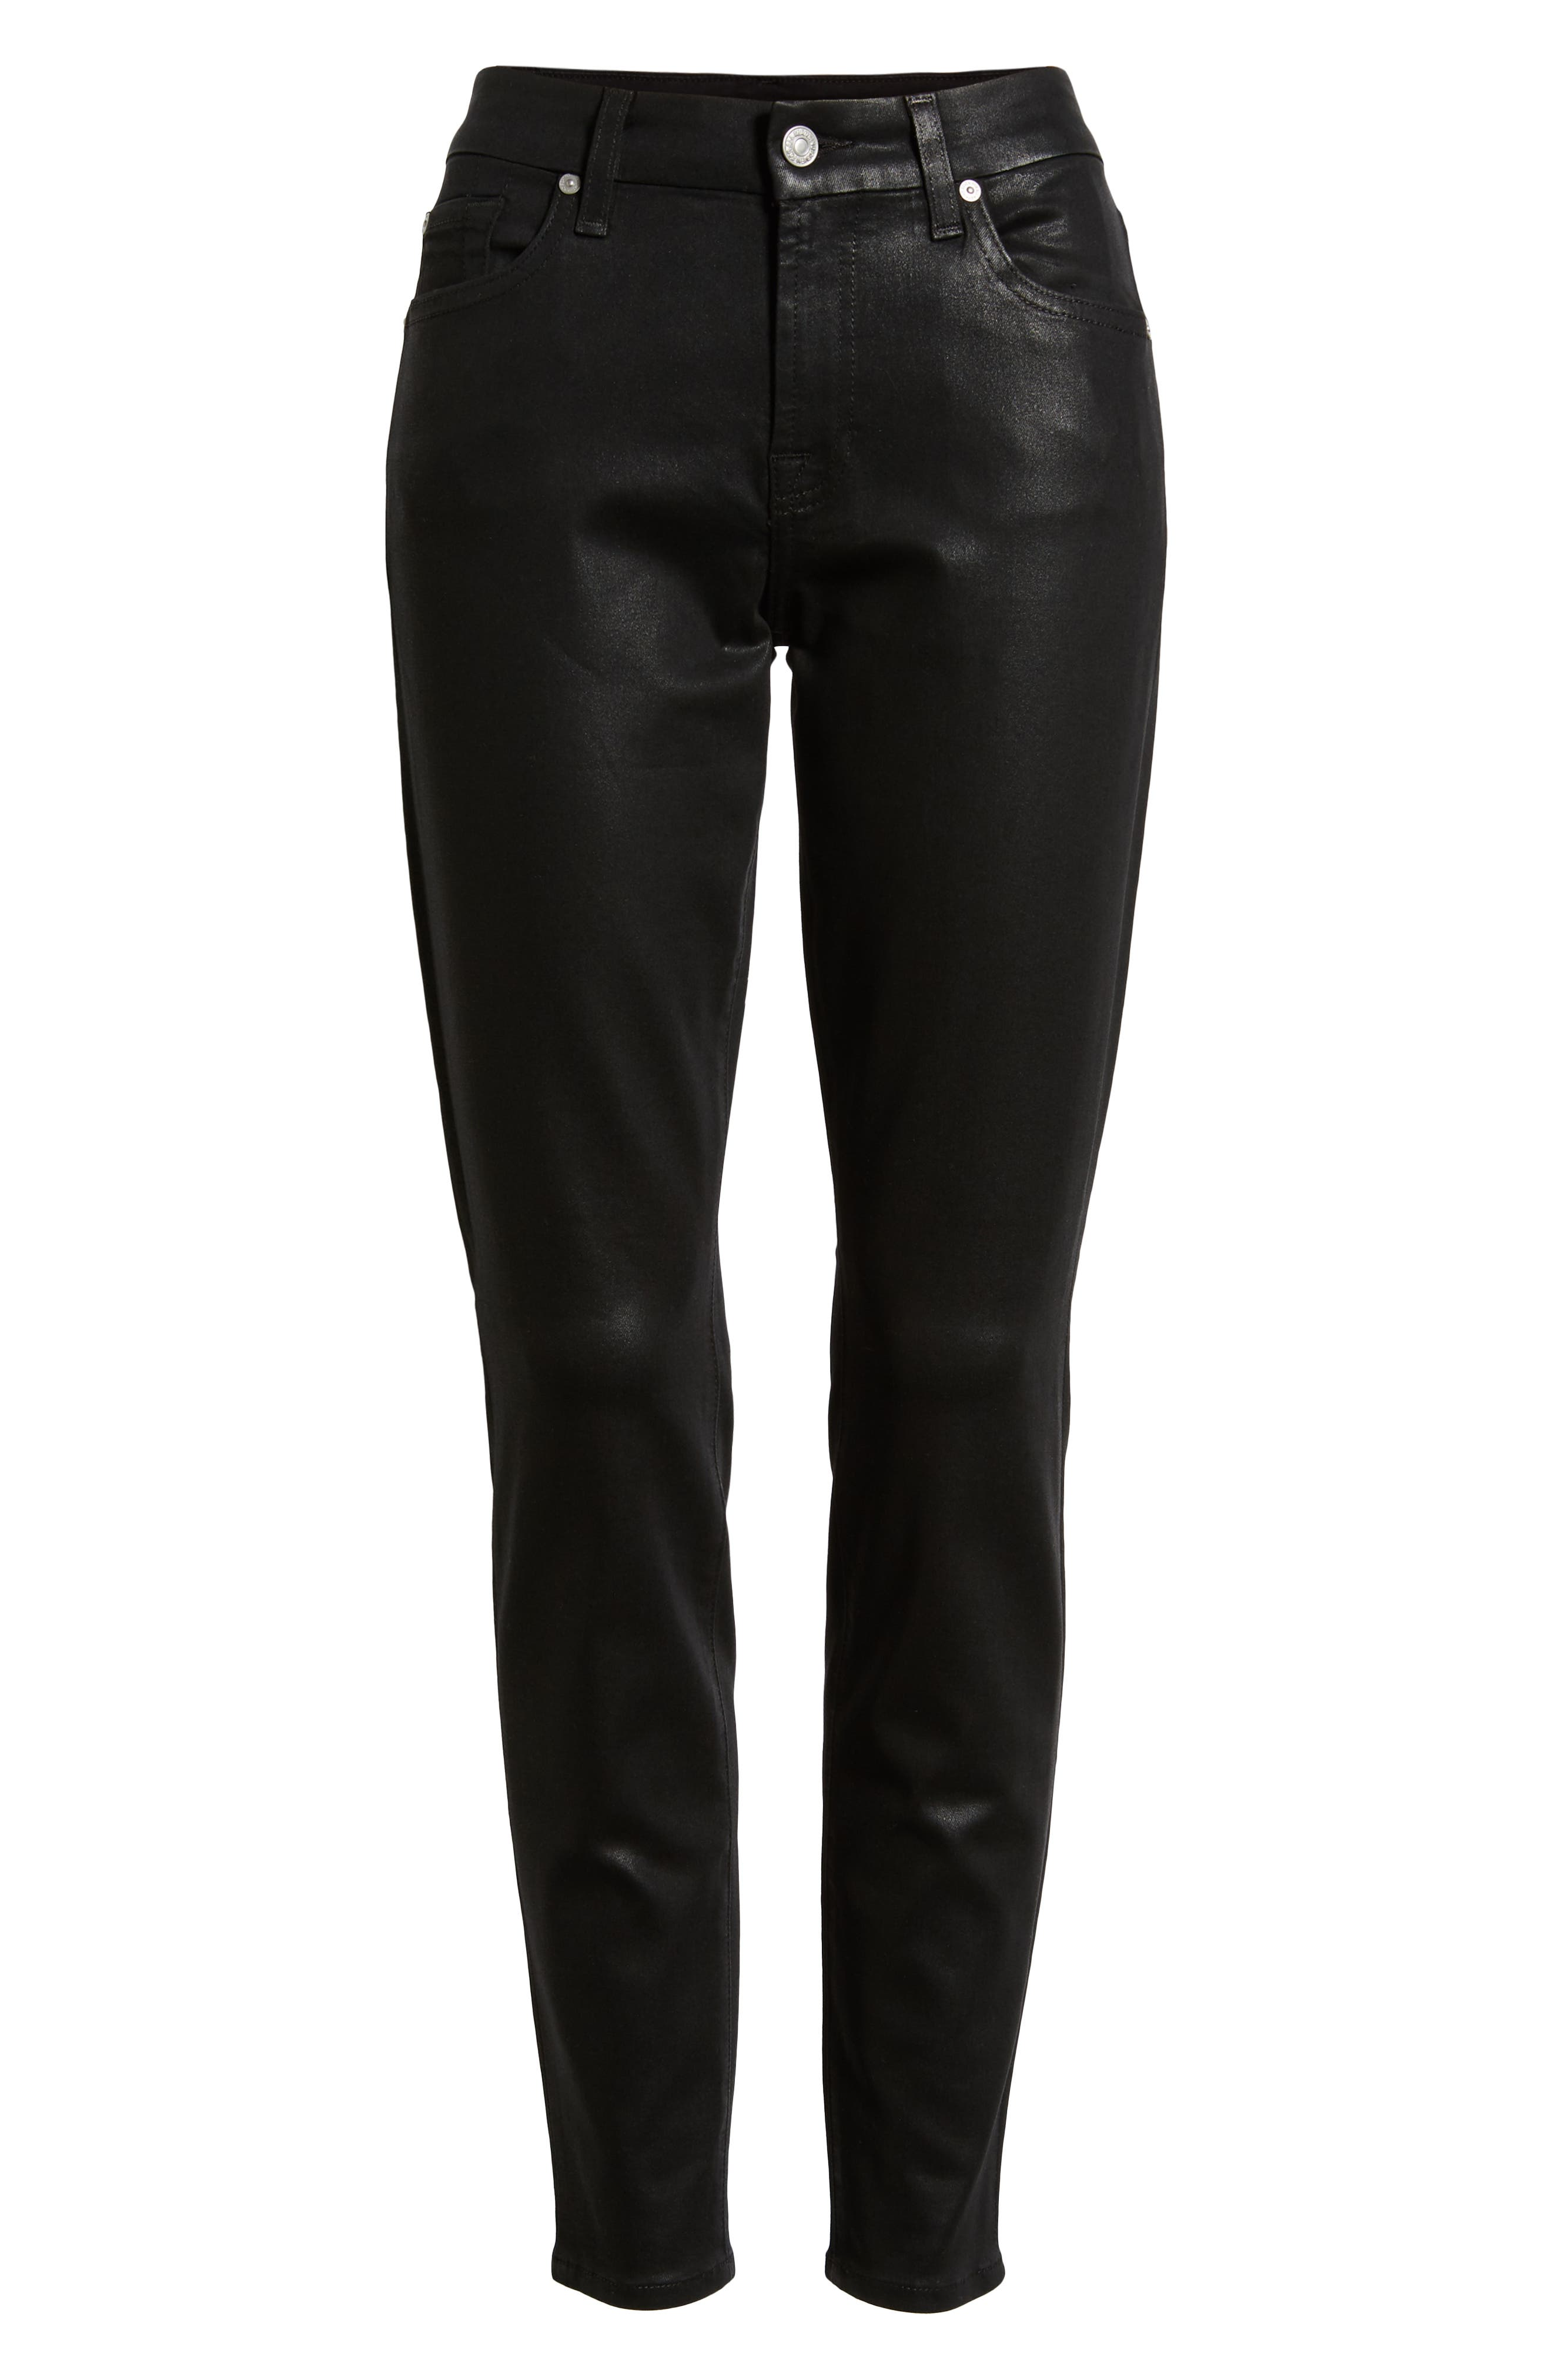 7 FOR ALL MANKIND<SUP>®</SUP>, b(air) Coated Ankle Skinny Jeans, Alternate thumbnail 7, color, 004